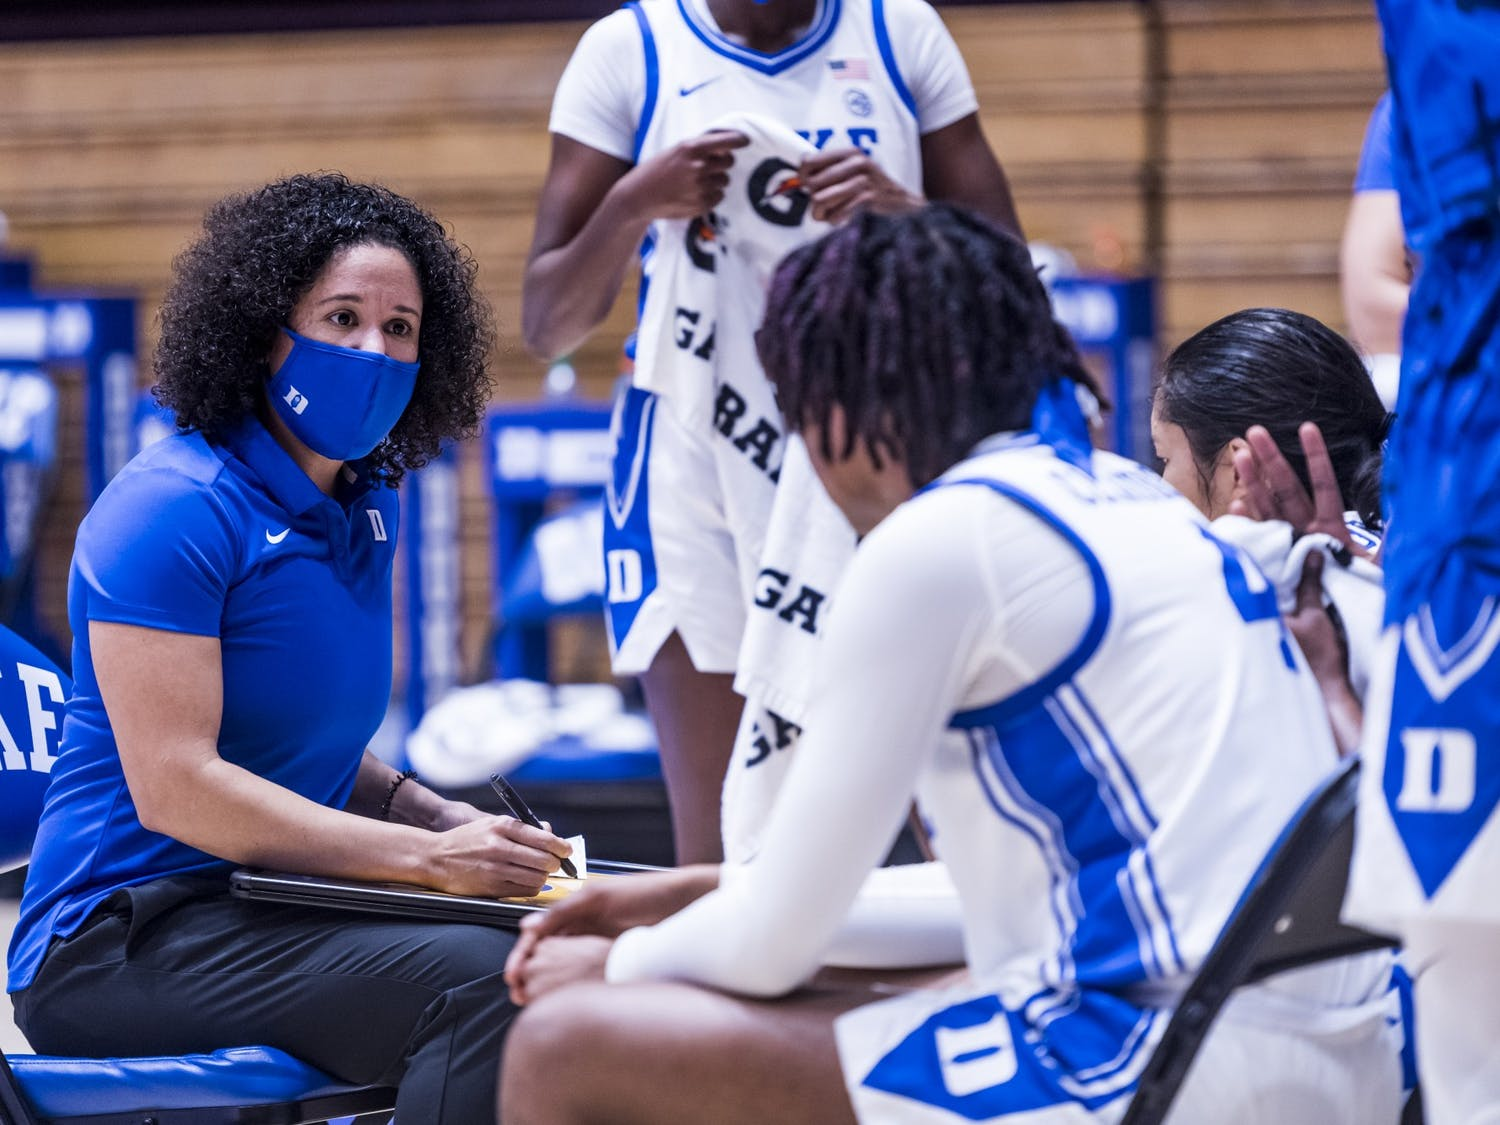 Lawson's wide range of experiences will serve her well as she prepares for her first season as a head coach.